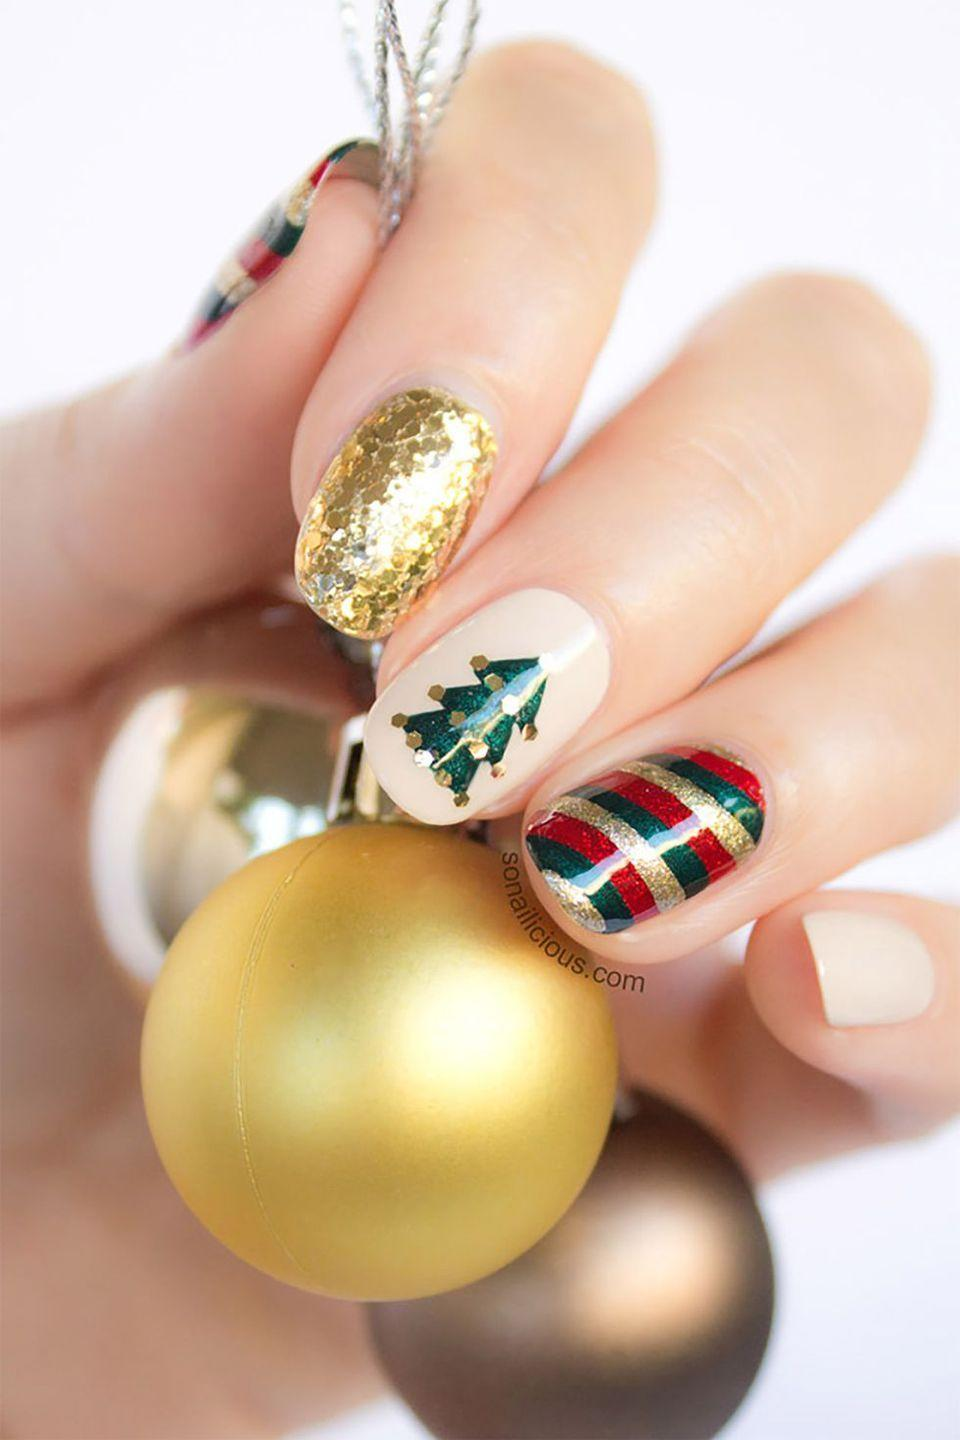 """<p>The most wonderful time of the year can also be one of the most stressful. Take a break from the holiday hustle and bustle and invite the girls over for an afternoon of pampering. Treat yourself to professional services or get inspired to <a href=""""https://www.countryliving.com/diy-crafts/g5035/christmas-nail-art-ideas/"""" rel=""""nofollow noopener"""" target=""""_blank"""" data-ylk=""""slk:do your own nails"""" class=""""link rapid-noclick-resp"""">do your own nails</a>, hair, makeup. You could even recreate this stunning manicure from <a href=""""http://sonailicious.com/gold-red-green-christmas-nail-art-tutorial/"""" rel=""""nofollow noopener"""" target=""""_blank"""" data-ylk=""""slk:So Nailicious."""" class=""""link rapid-noclick-resp"""">So Nailicious.</a> </p>"""